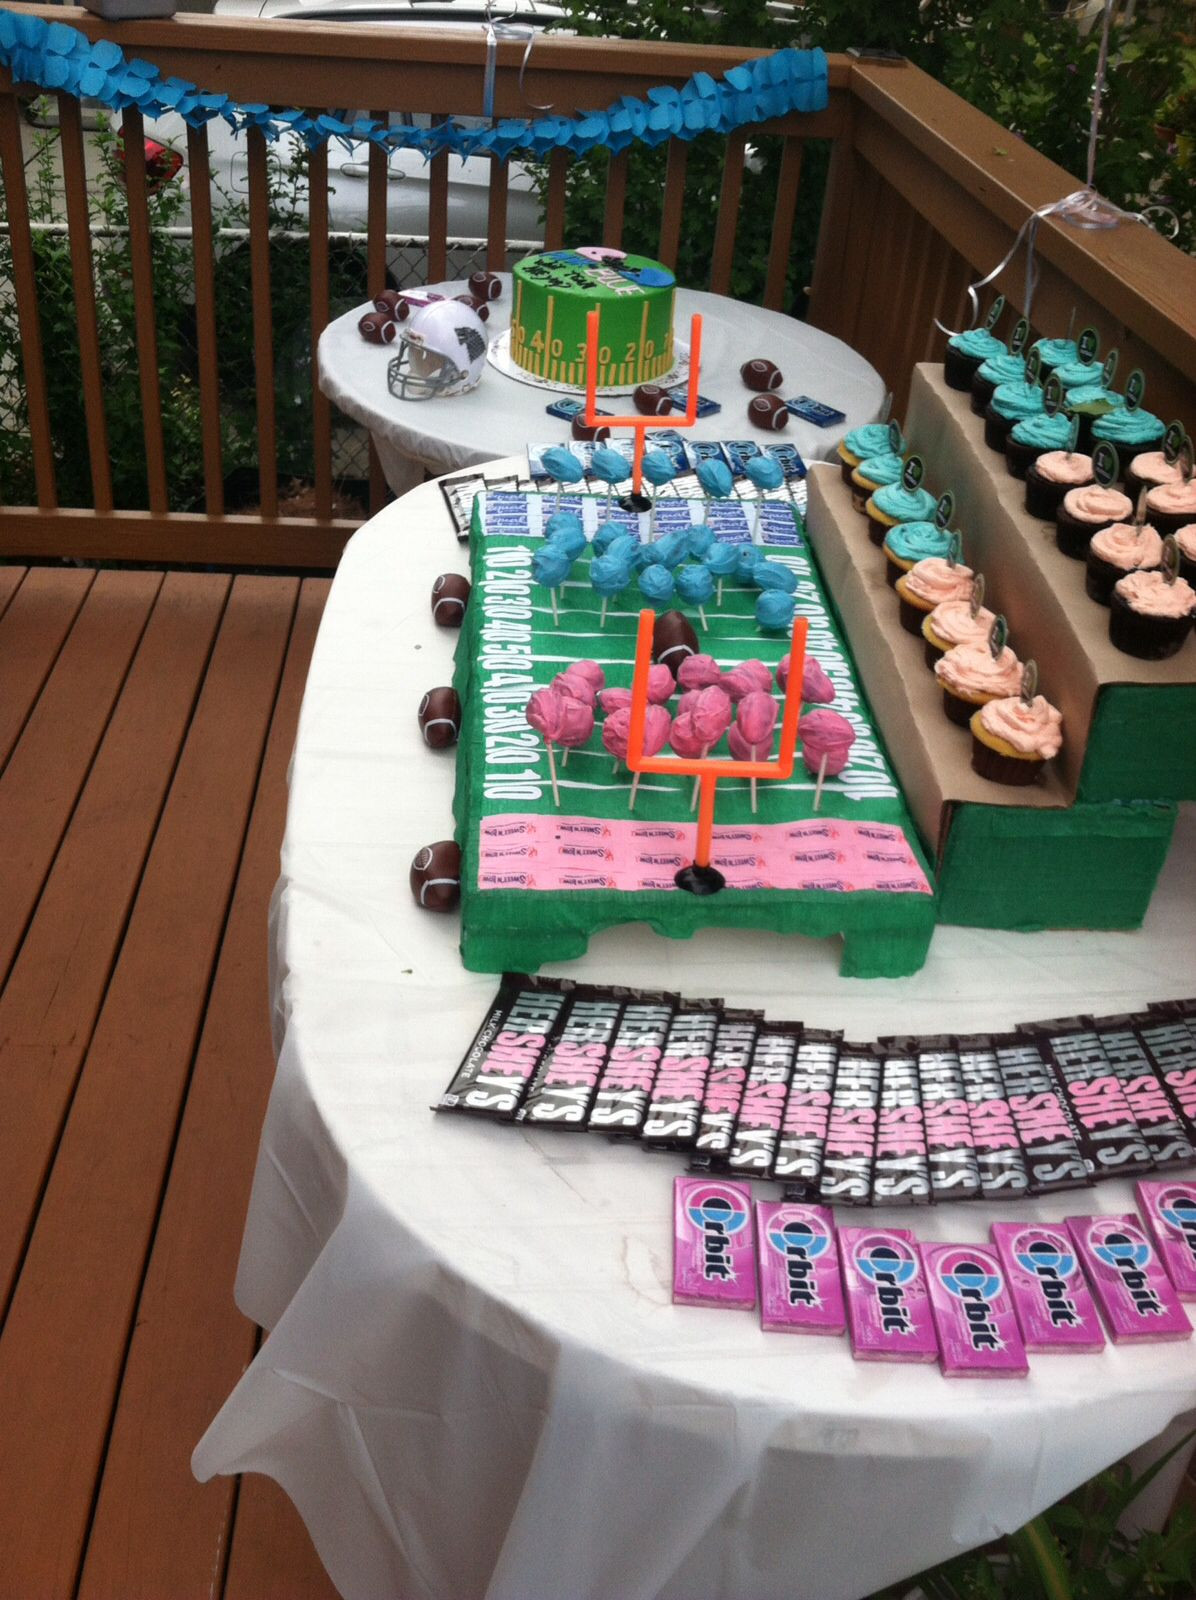 Football Themed Gender Reveal Party Ideas  The 20 Best Ideas for Football themed Gender Reveal Party